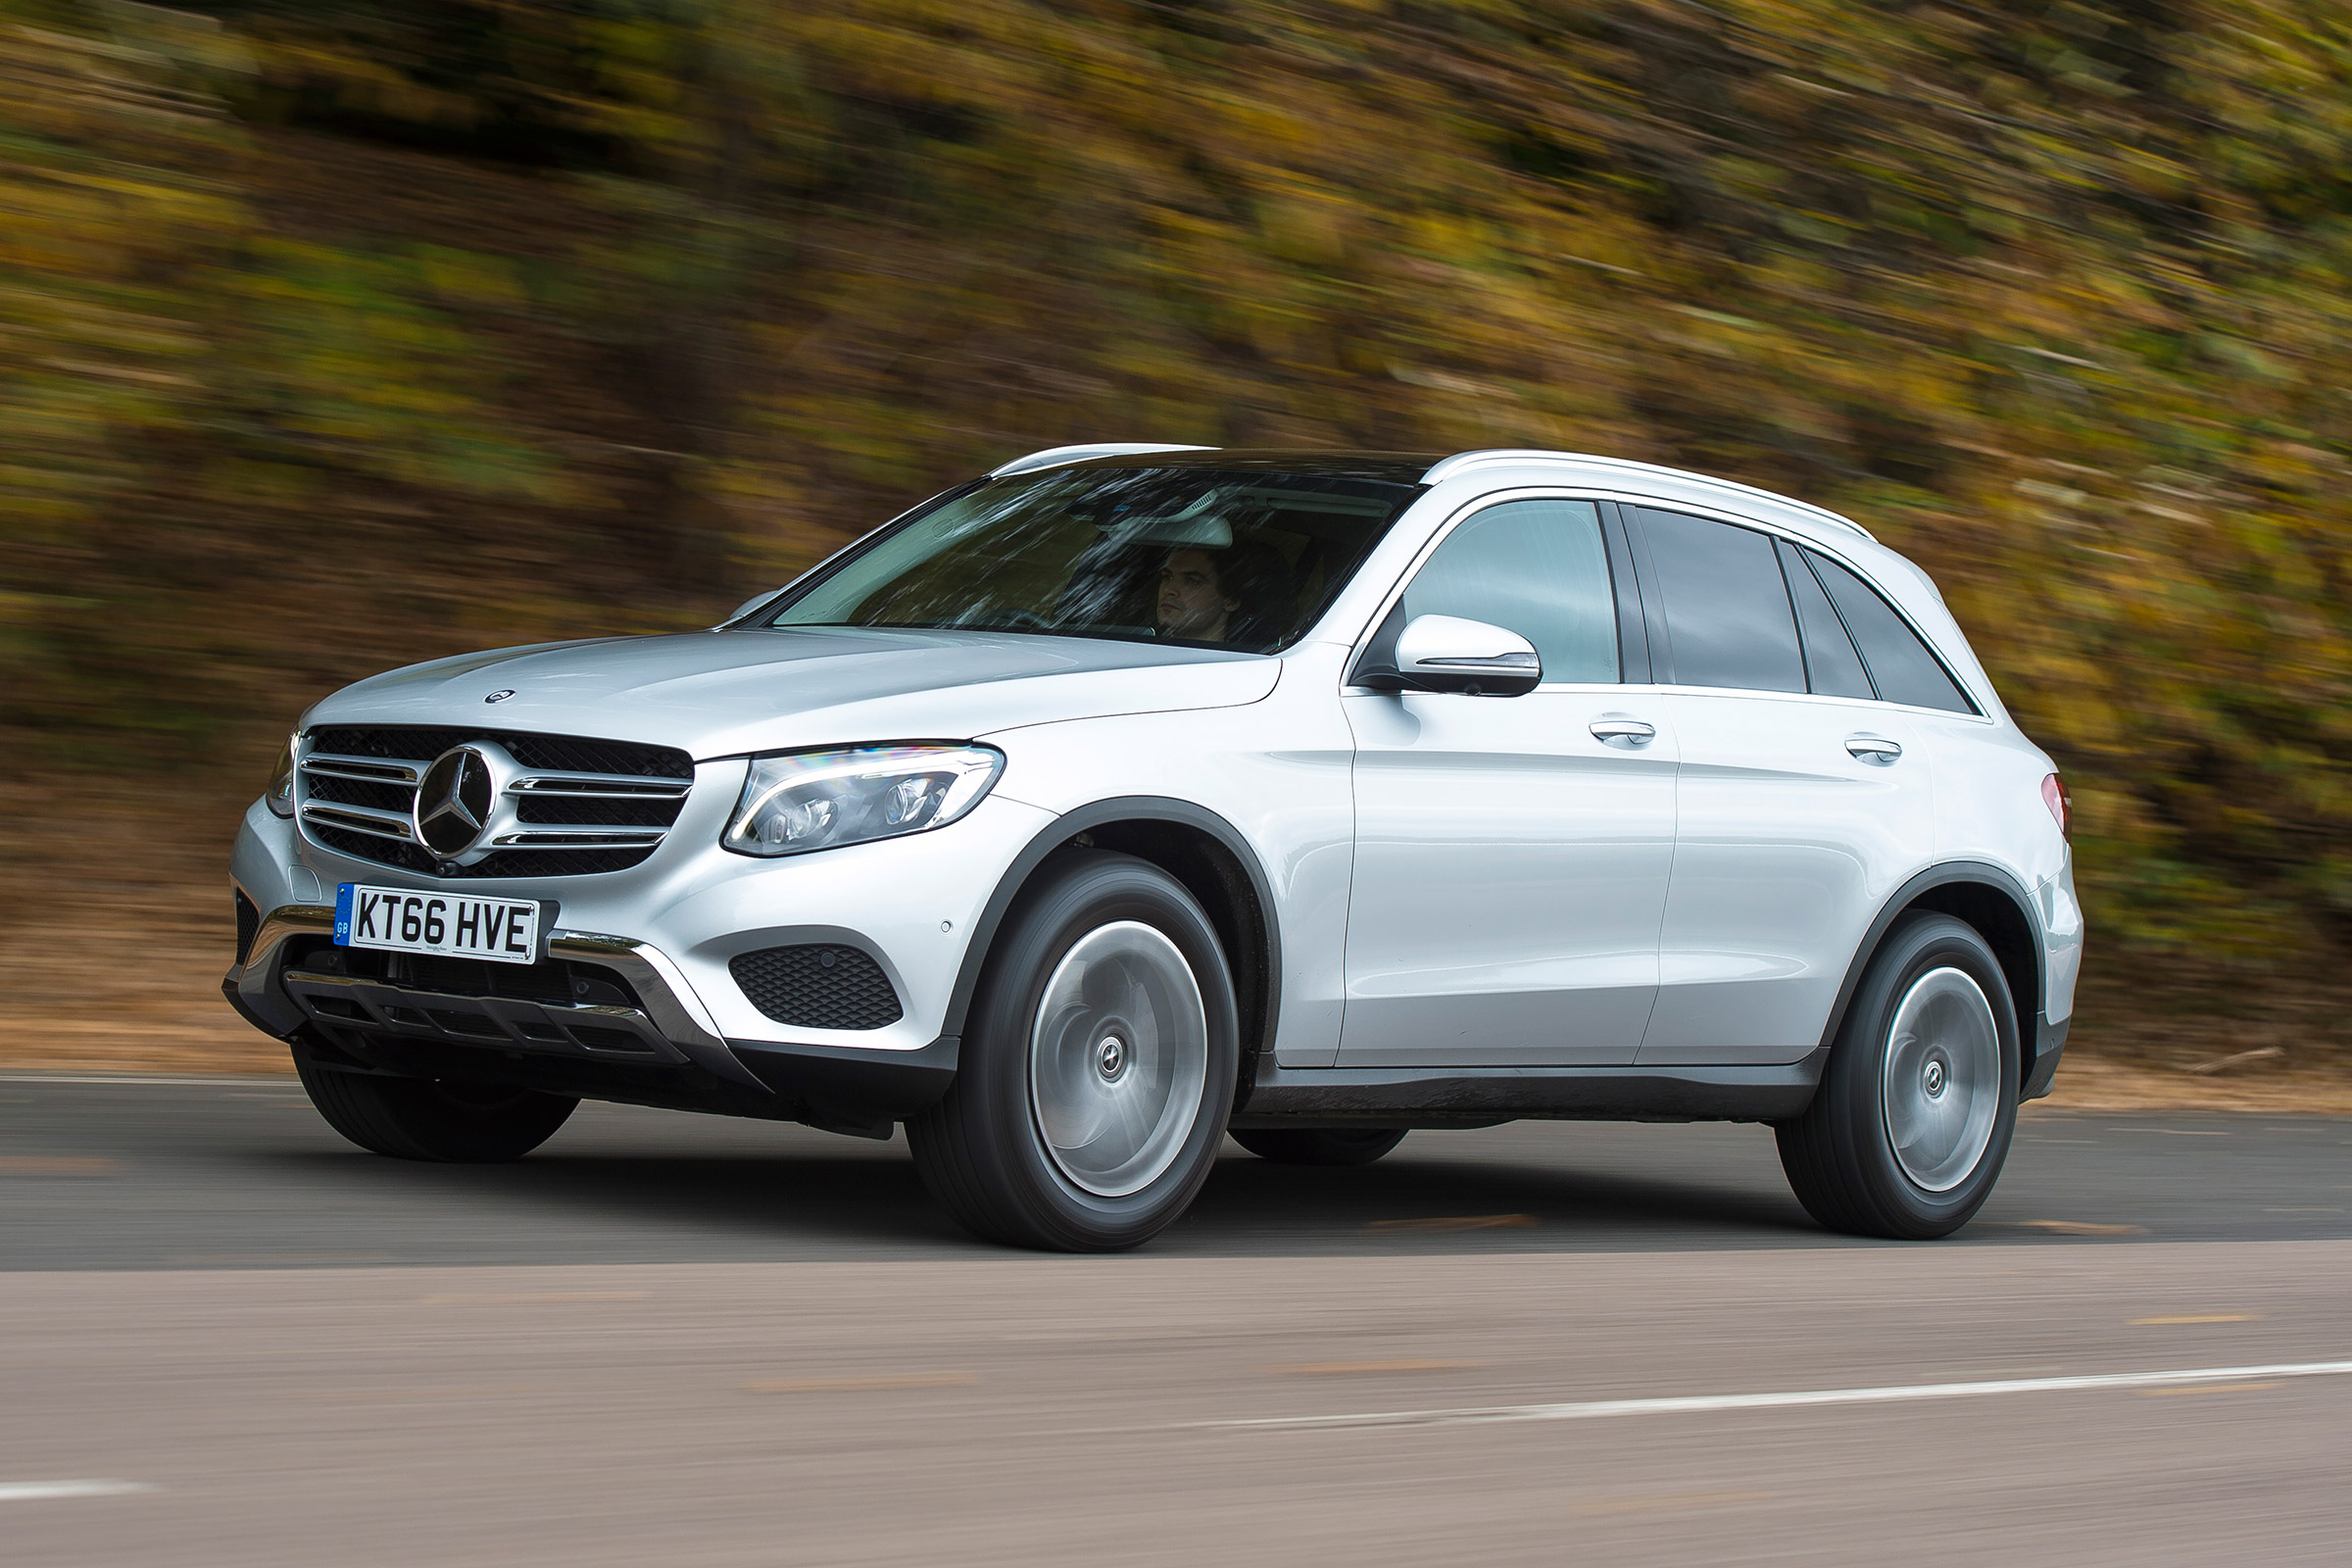 38 New Mercedes Glc Price Design and Review